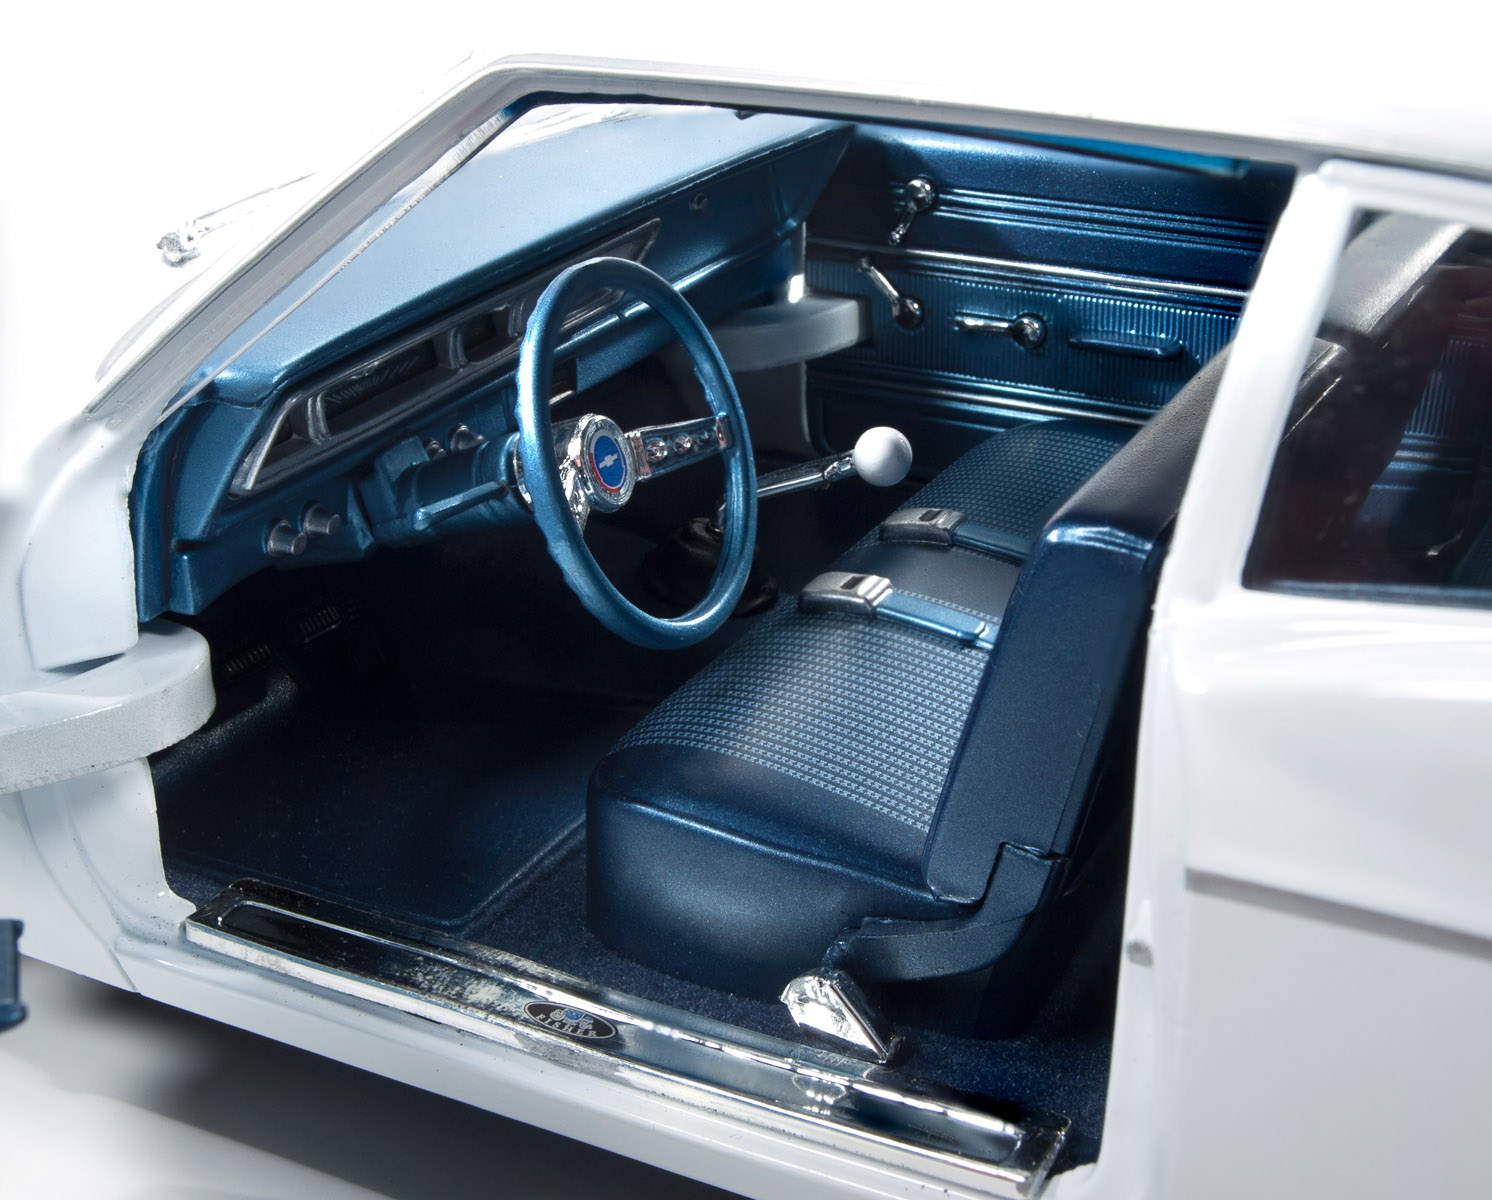 1966 Chevrolet Bel Air Round2 Rear View Home Scale 118